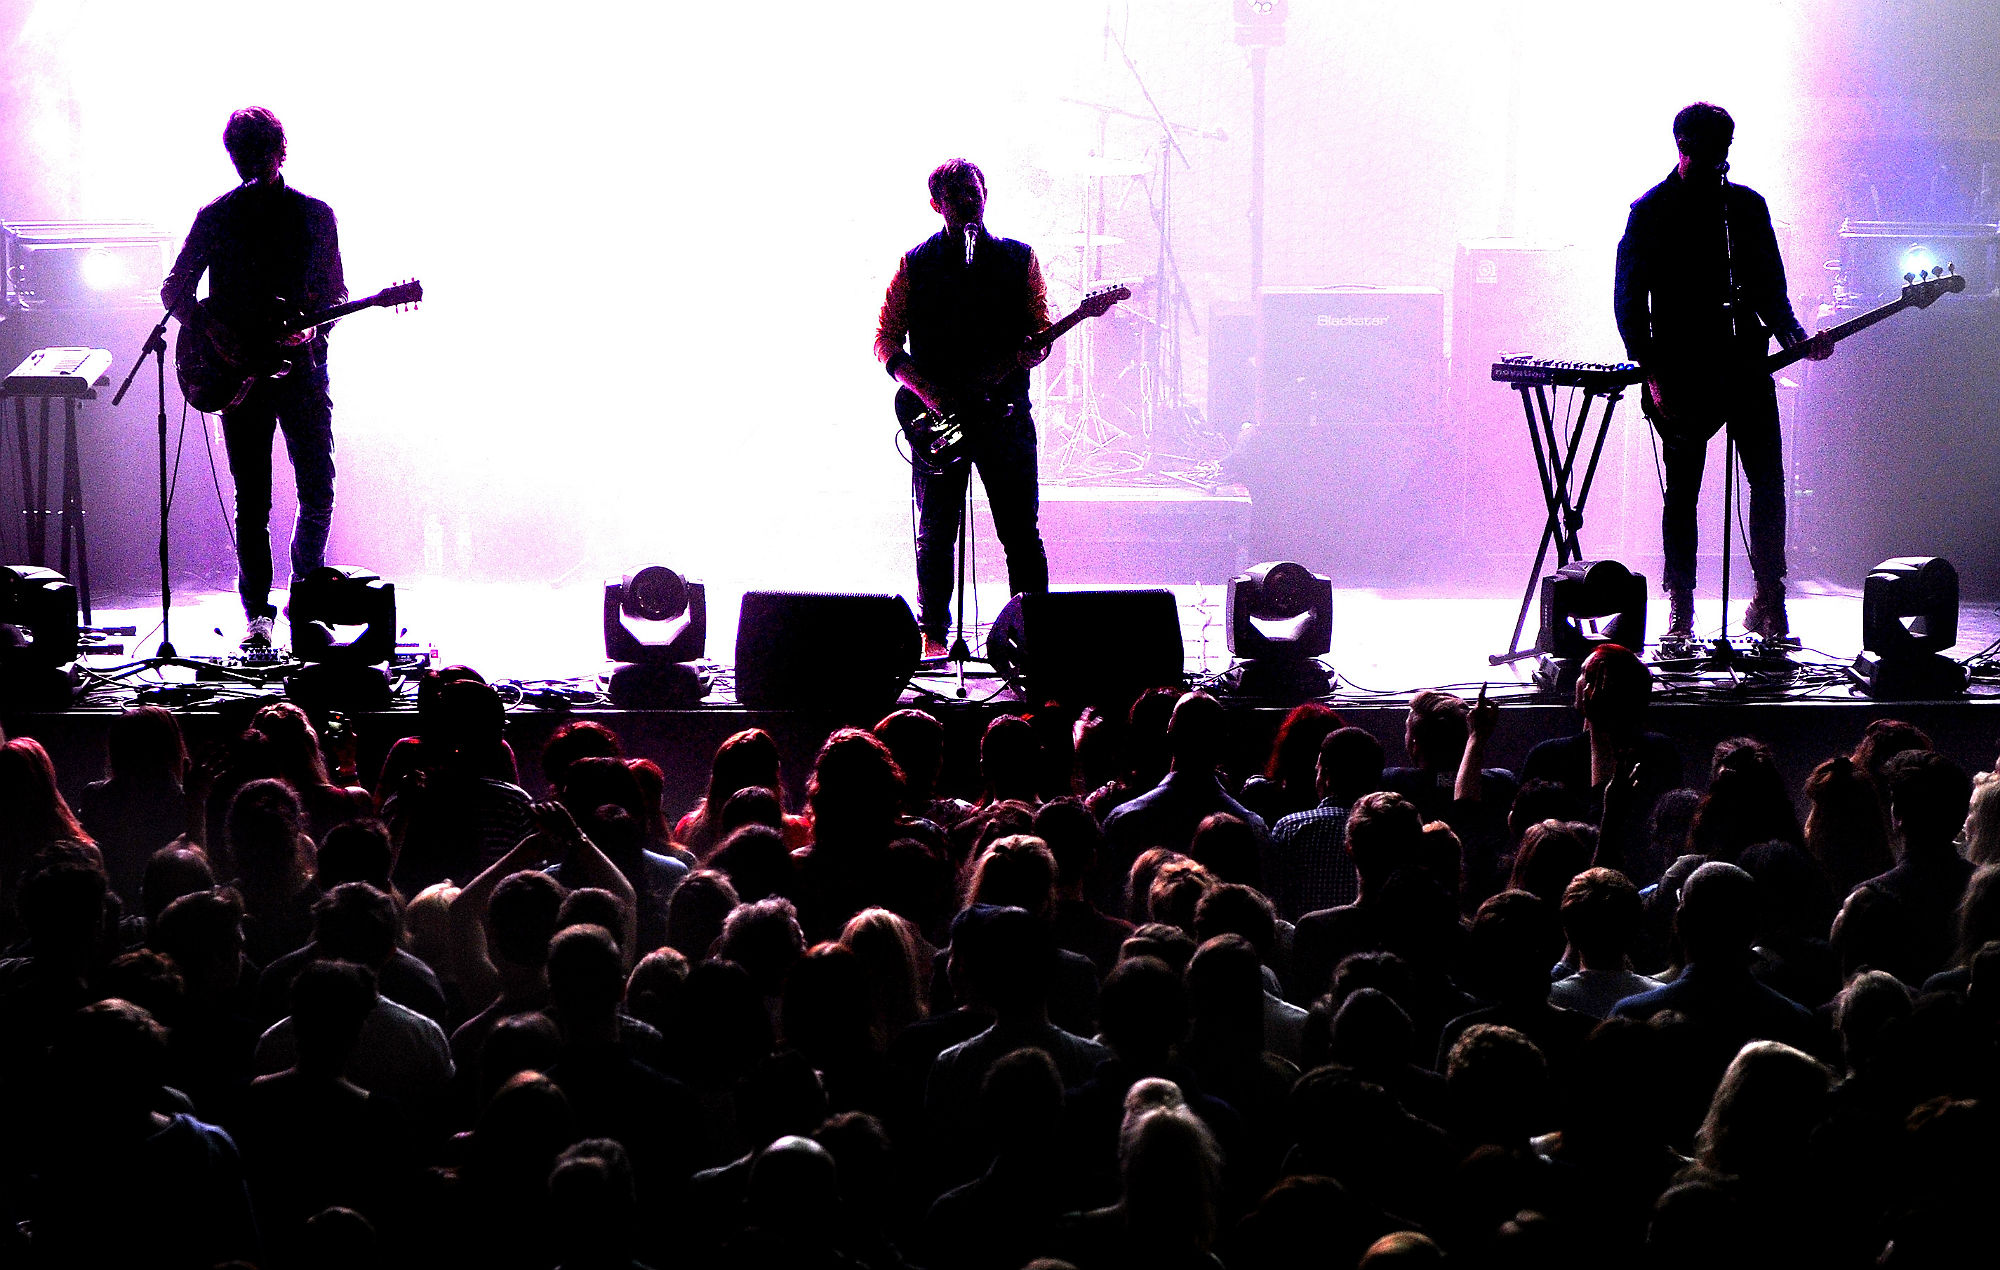 Jonathan Higgs, Jeremy Pritchard and Alex Robertshaw of Everything Everything perform at The Ritz, Manchester on October 11, 2013 in Manchester, England. (Photo by Shirlaine Forrest/WireImage)